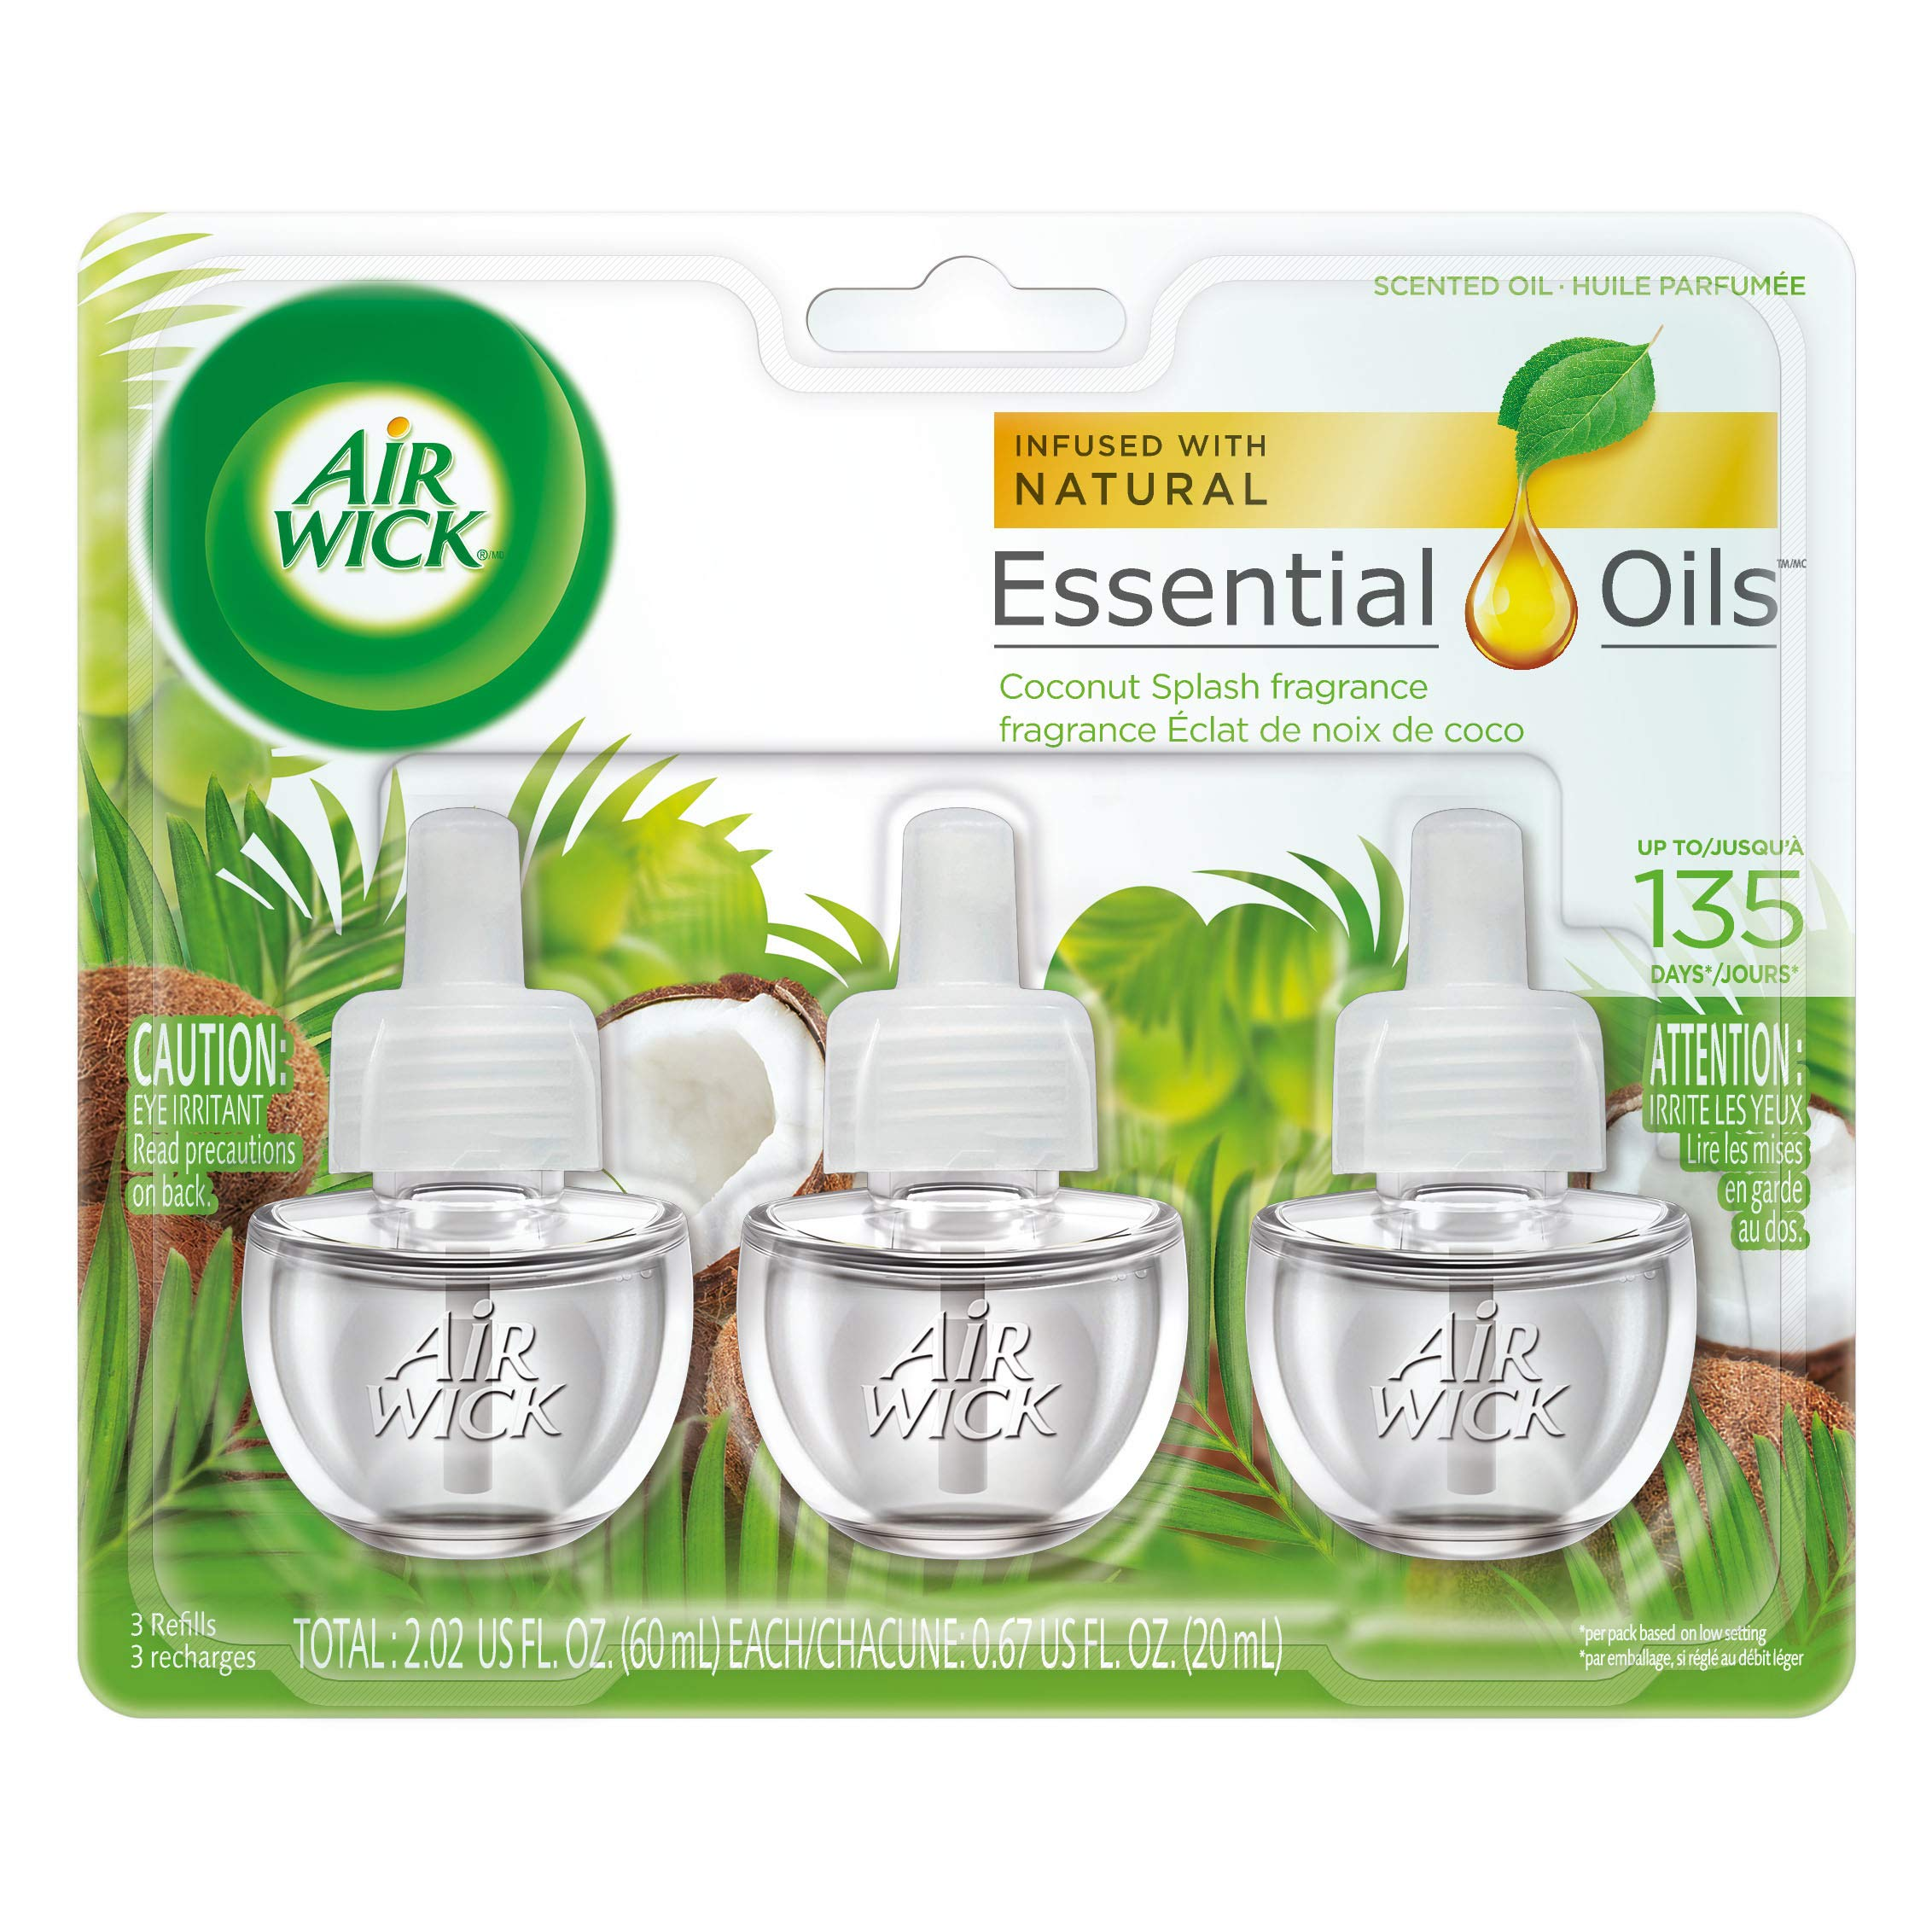 Air Wick Scented Oil Coconut Splash Fragrance, Triple Refills, 0.67oz (Pack of 2)